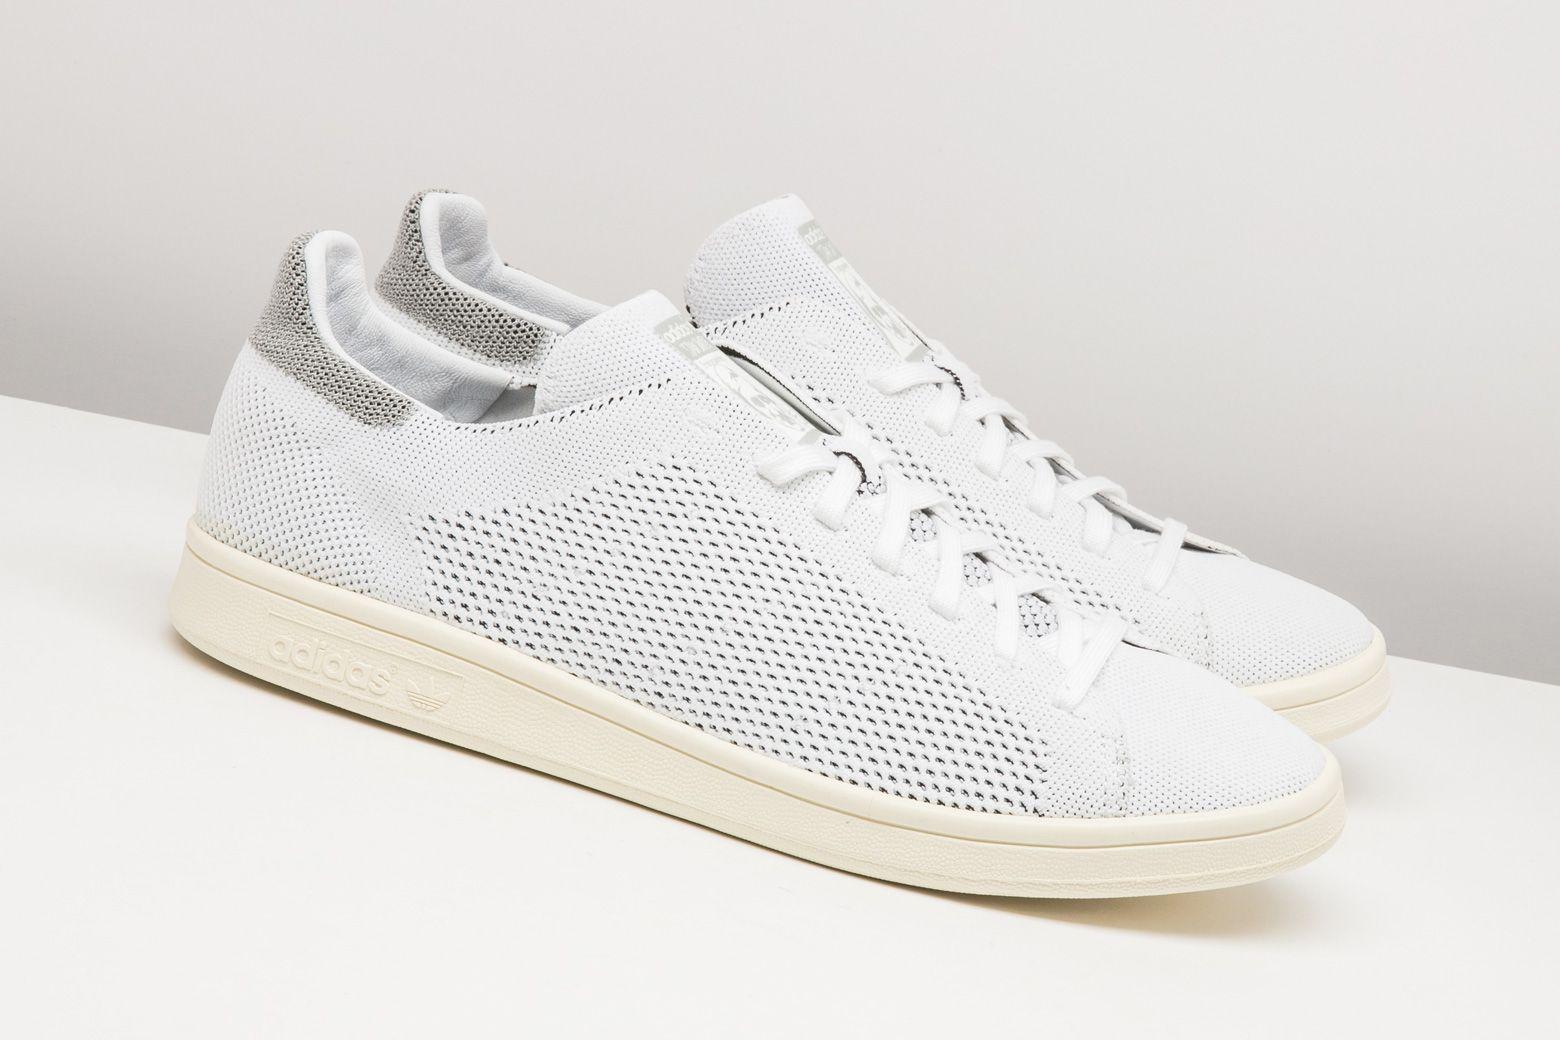 buy online 8aeb7 ddf16 The clean and simple adidas Stan Smith Primeknit will provide all of the  coziness you need